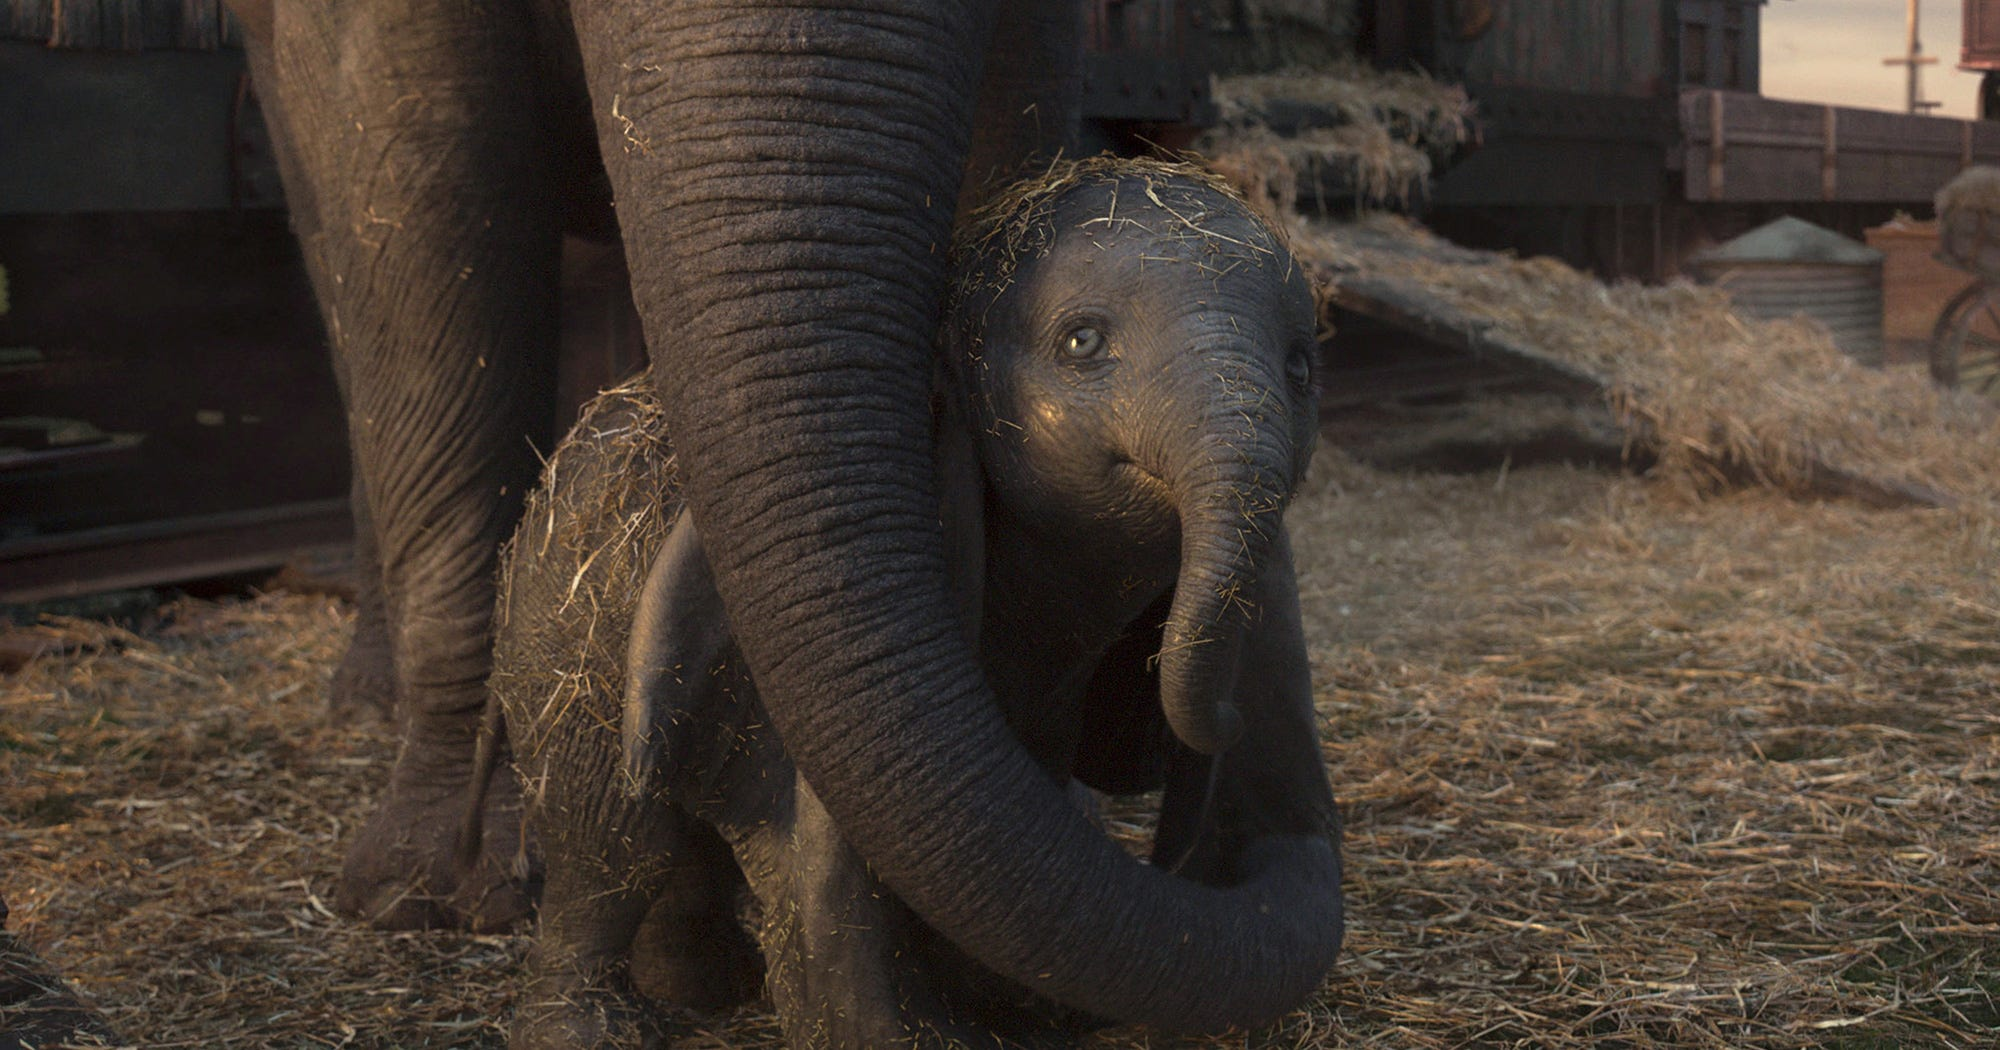 How Accurate Is The Dumbo Version Of A Baby Elephant?